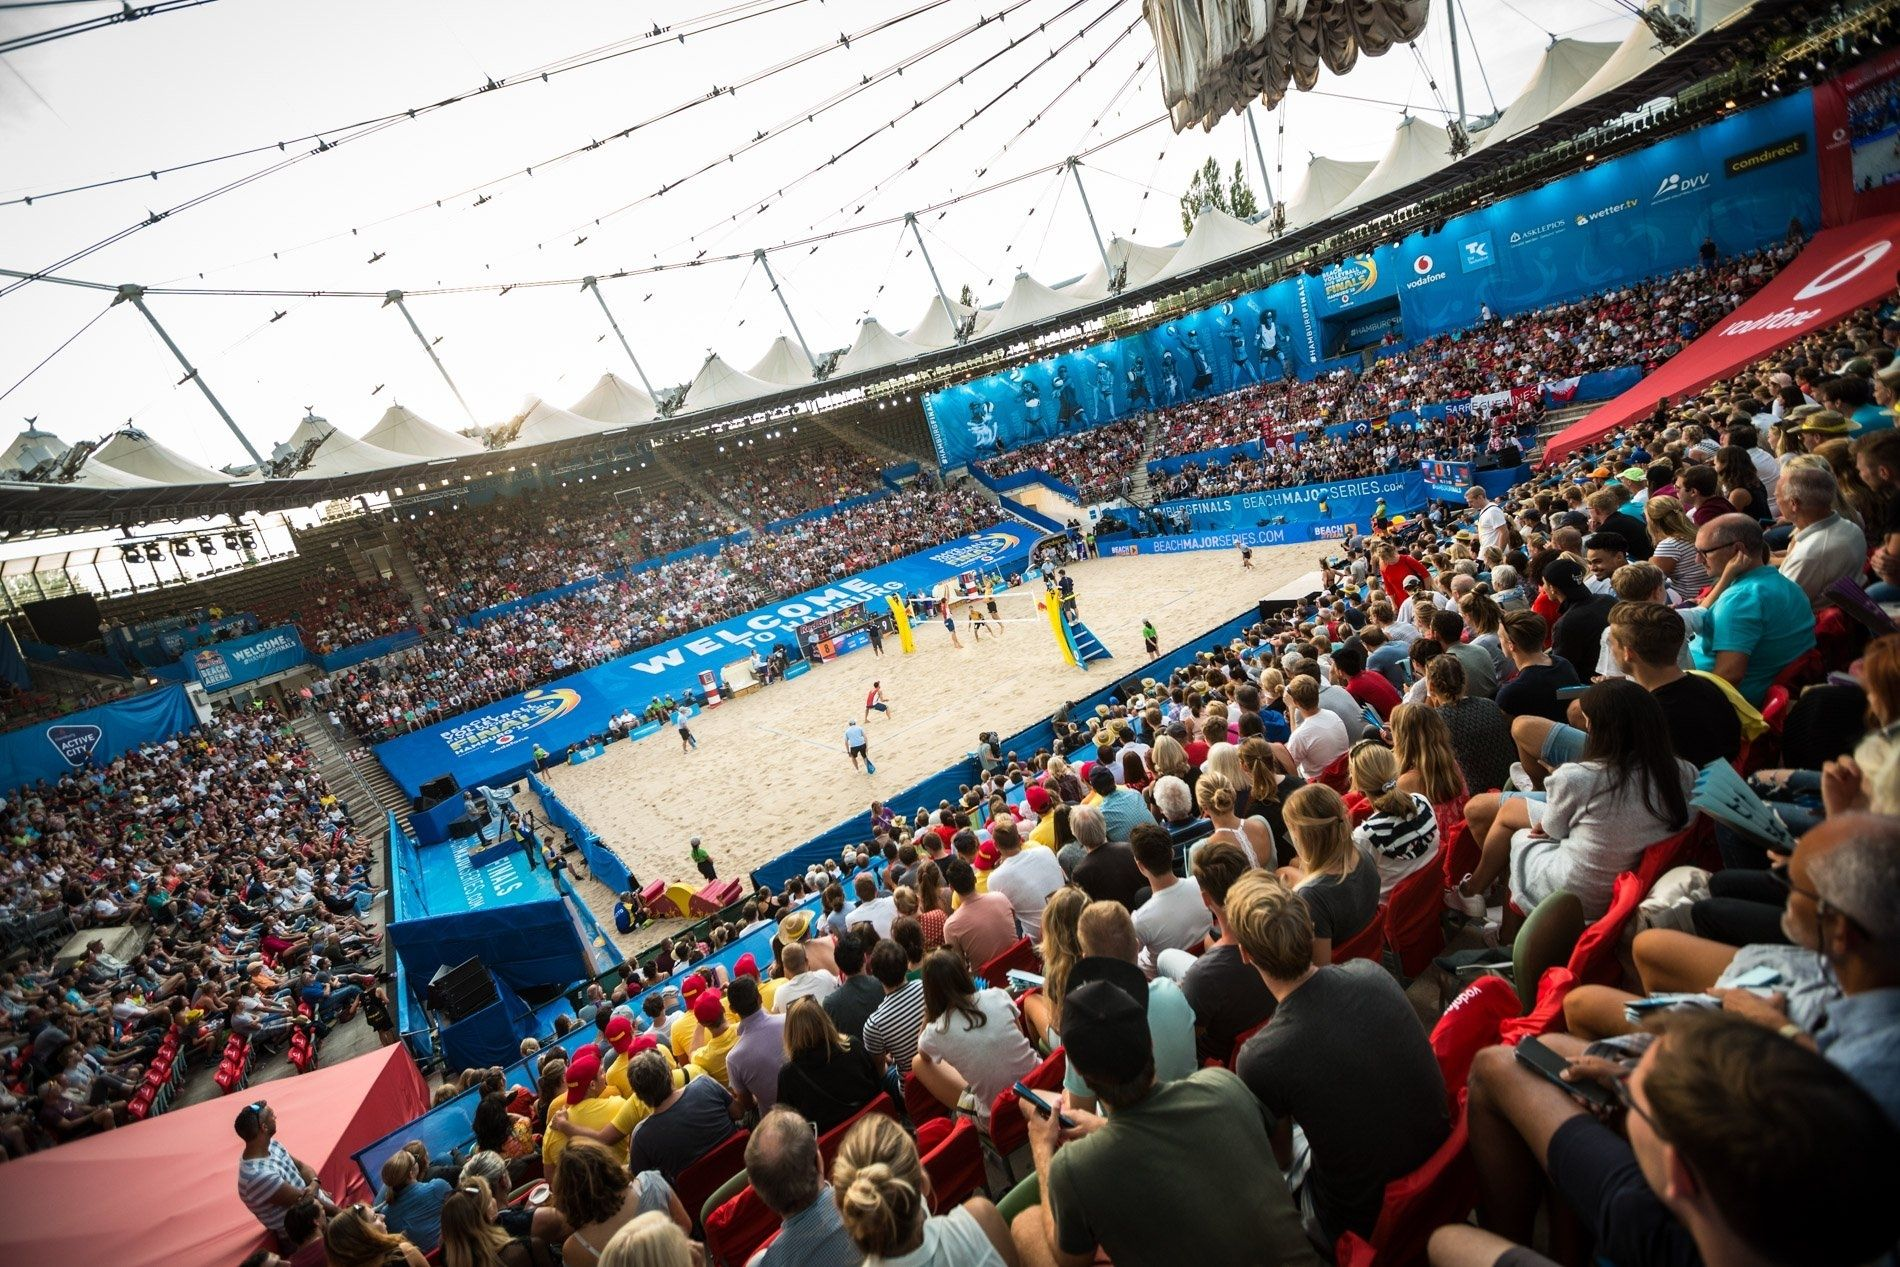 The Iconic Rothenbaum Stadium Will Host The 2019 Beach Volleyball World Championships In 2020 World Championship Sports Arena Beach Volleyball